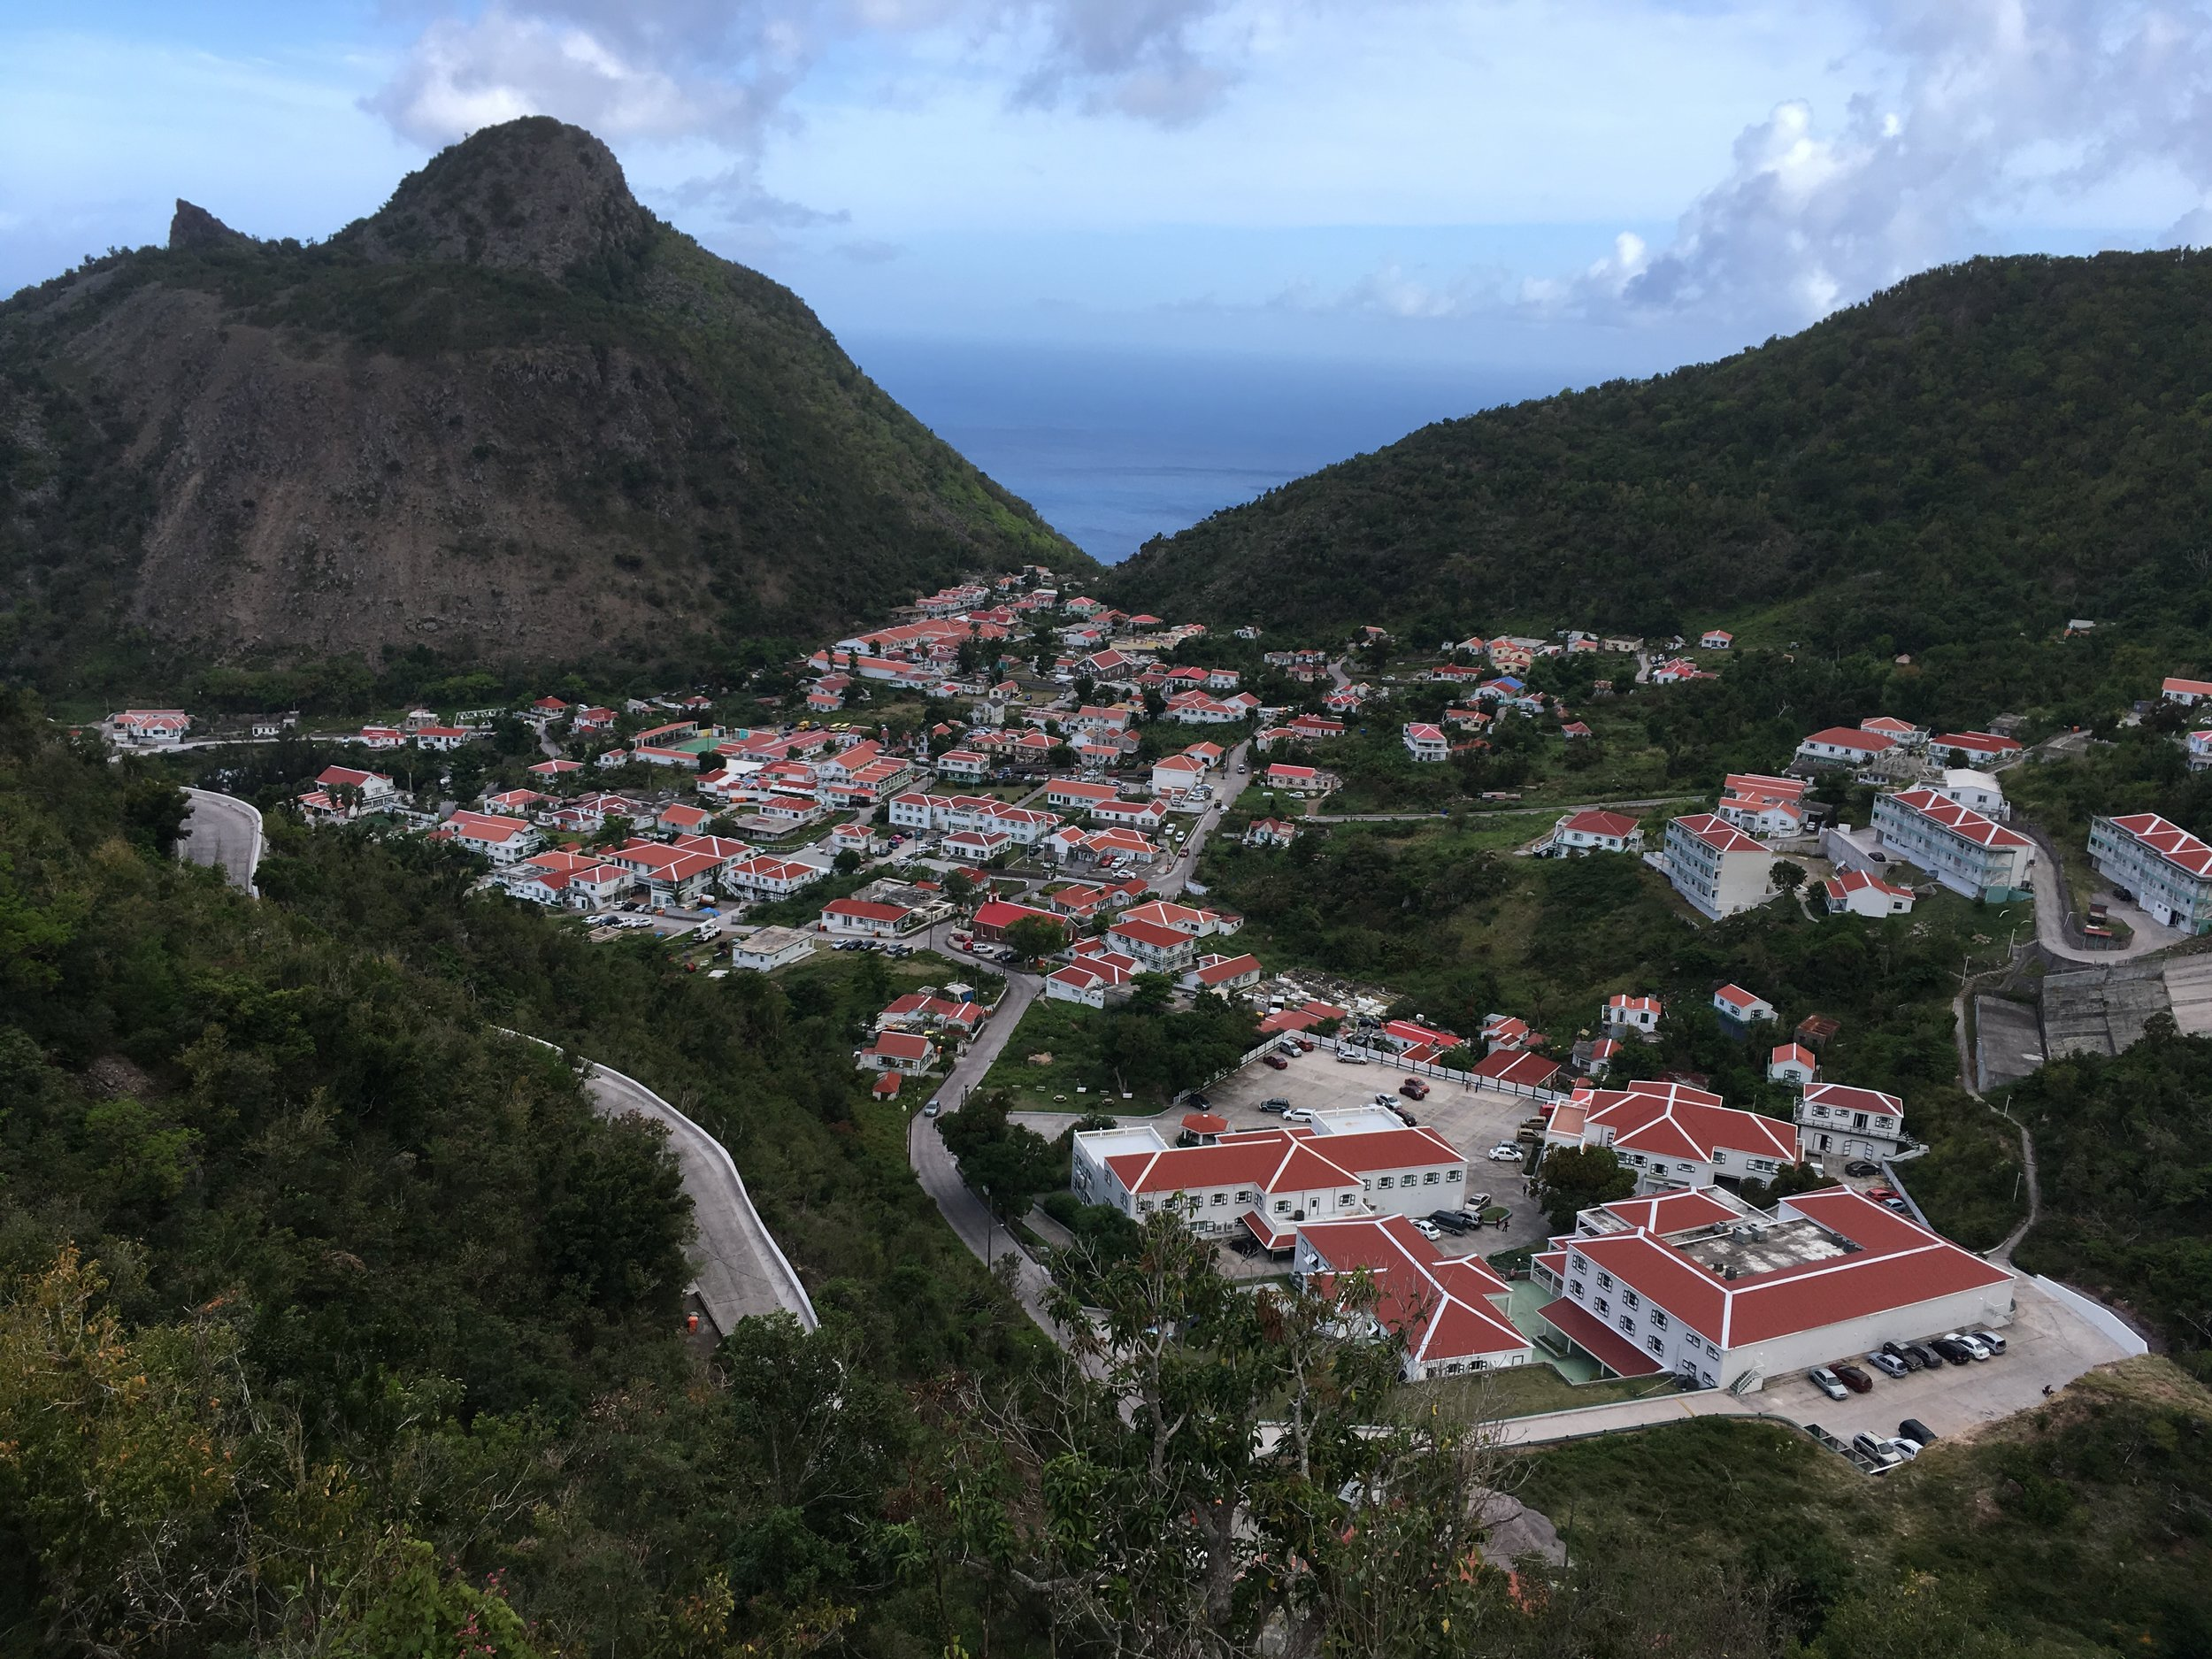 The village of The Bottom, the capital of the Dutch island of Saba.